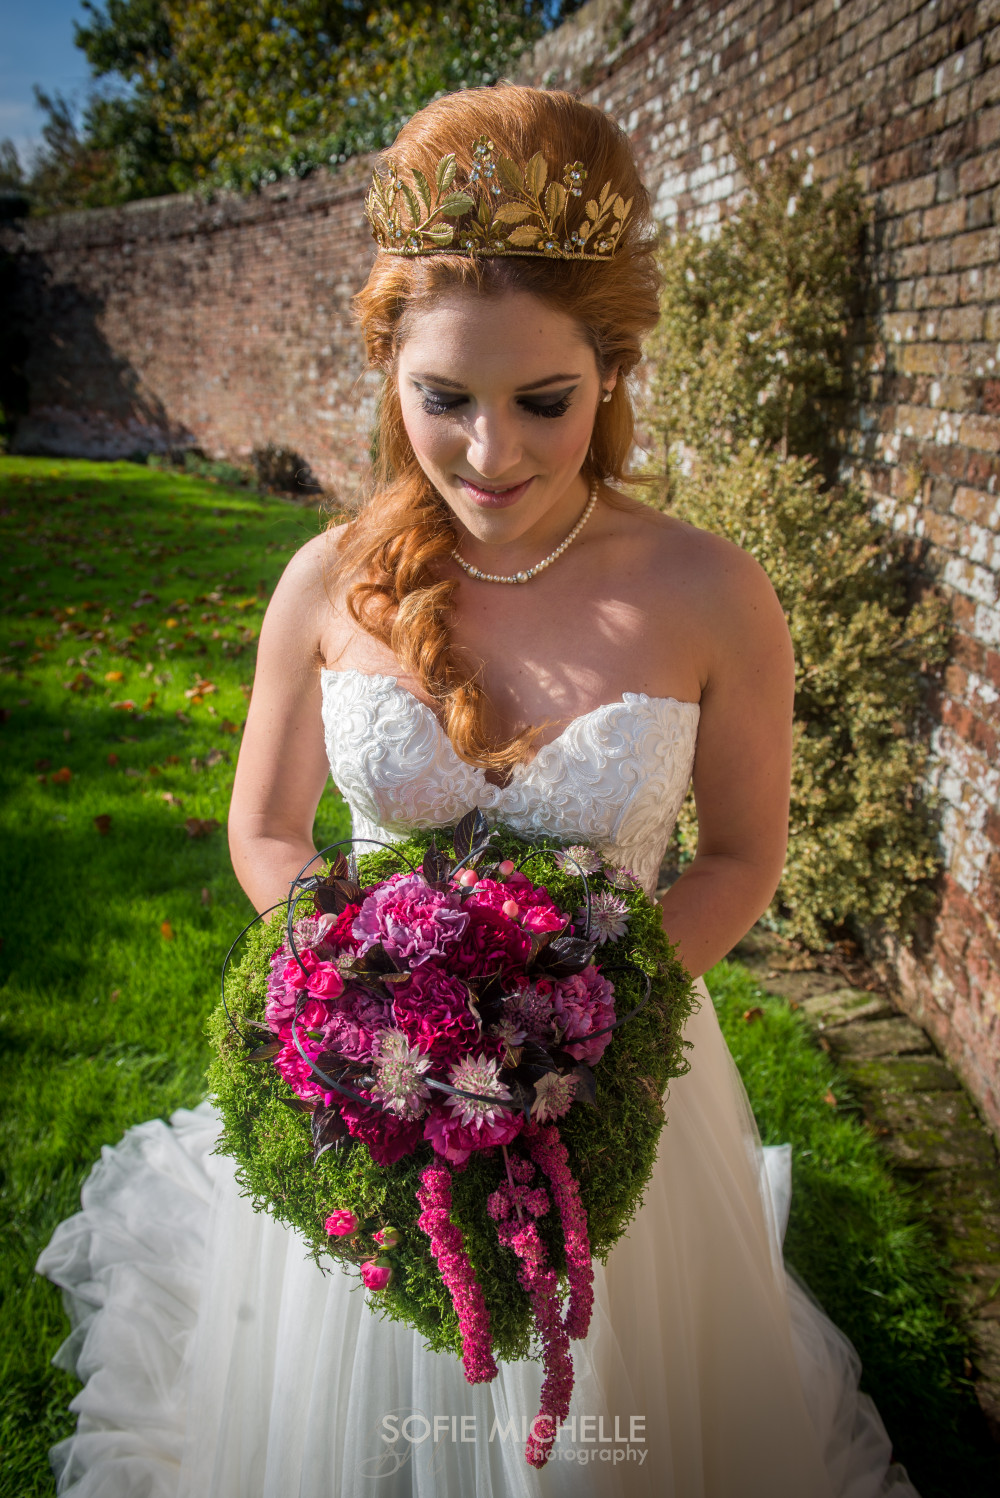 The Orangery Suite, Wimborne - Make Me Bridal Artist: Timeless Beauty by Louise. Photography by: Sofie Smith. #spectrumbruses #weddingday #lauramercier #pink #bold